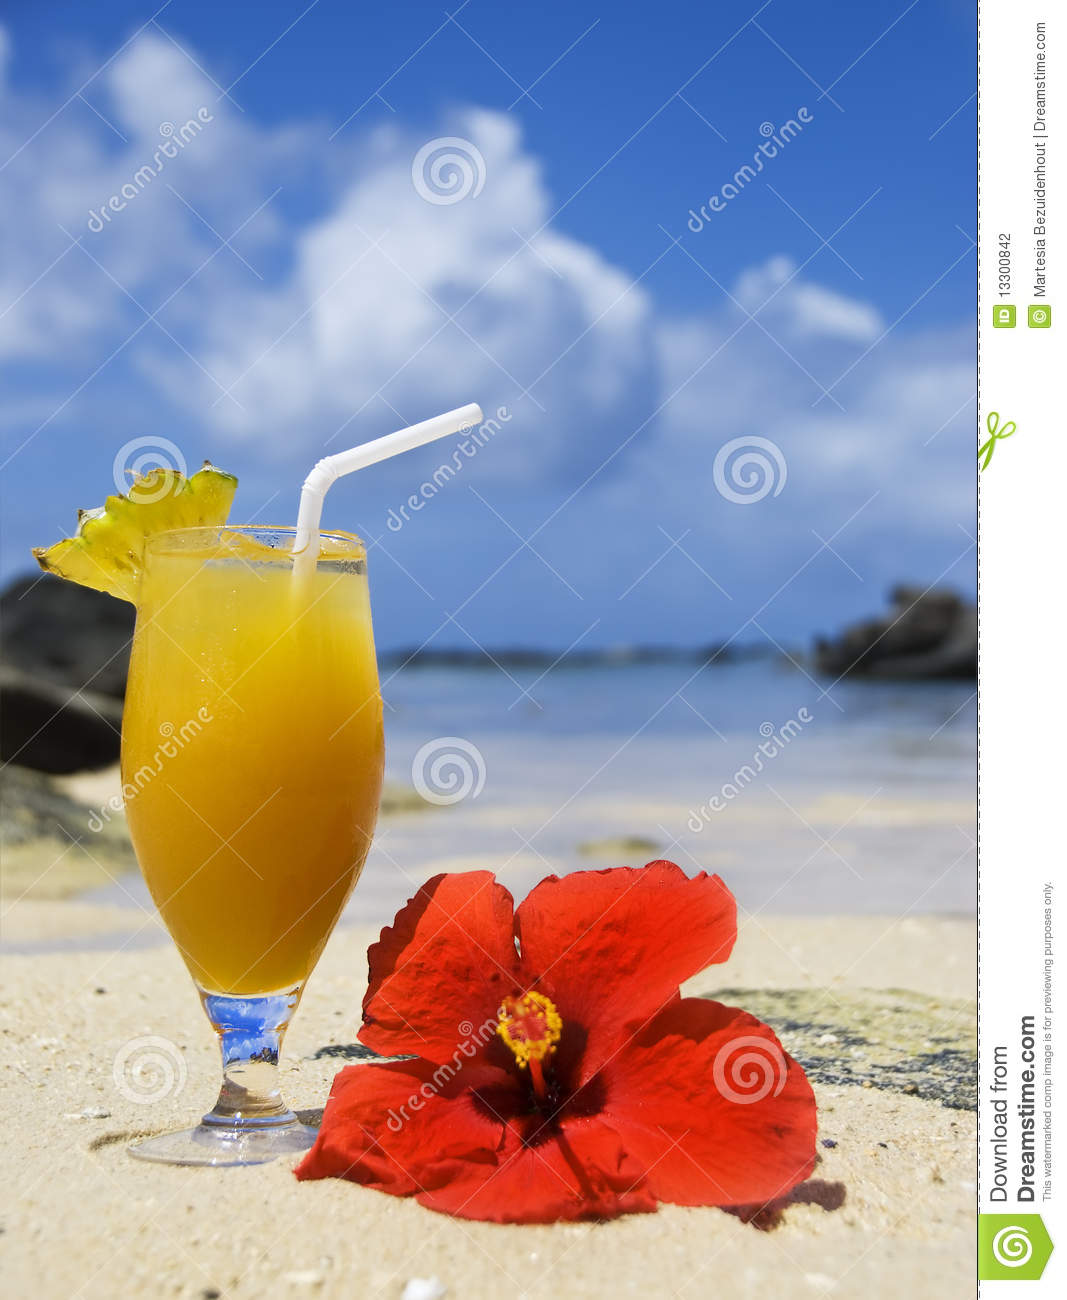 8 Tropical Island Rum Cocktails: Fresh Fruit Cocktail On A Tropical Island Stock Photo